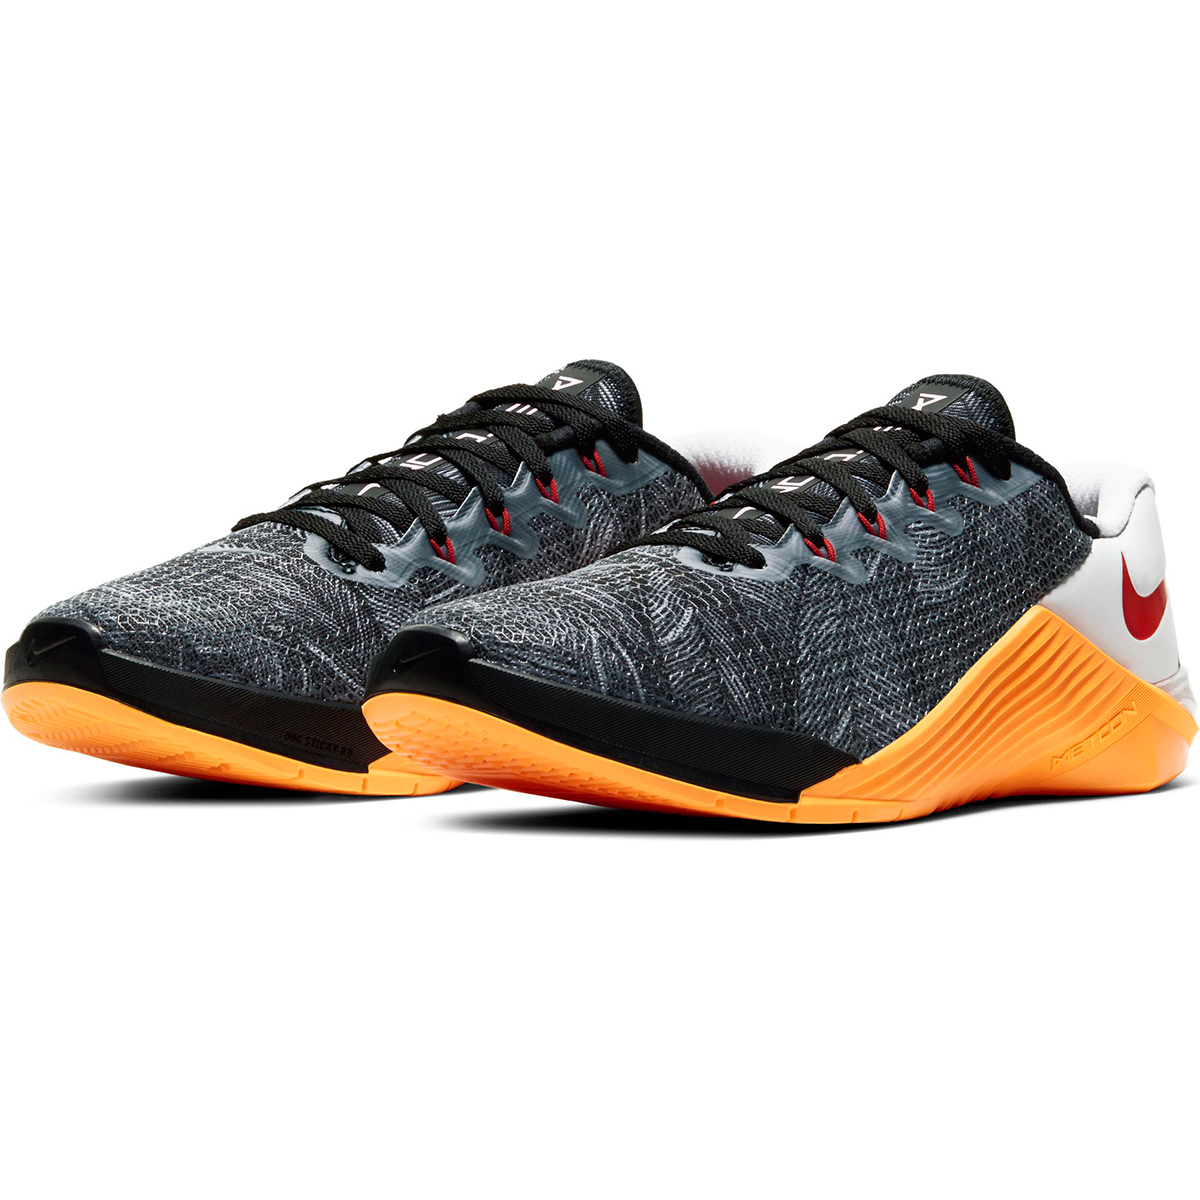 Women's Nike Metcon 5 Training Shoes - Color: Black/White/Laser Orange/Team Orange (Regular Width) - Size: 5, Black/White/Laser Orange/Team Orange, large, image 4